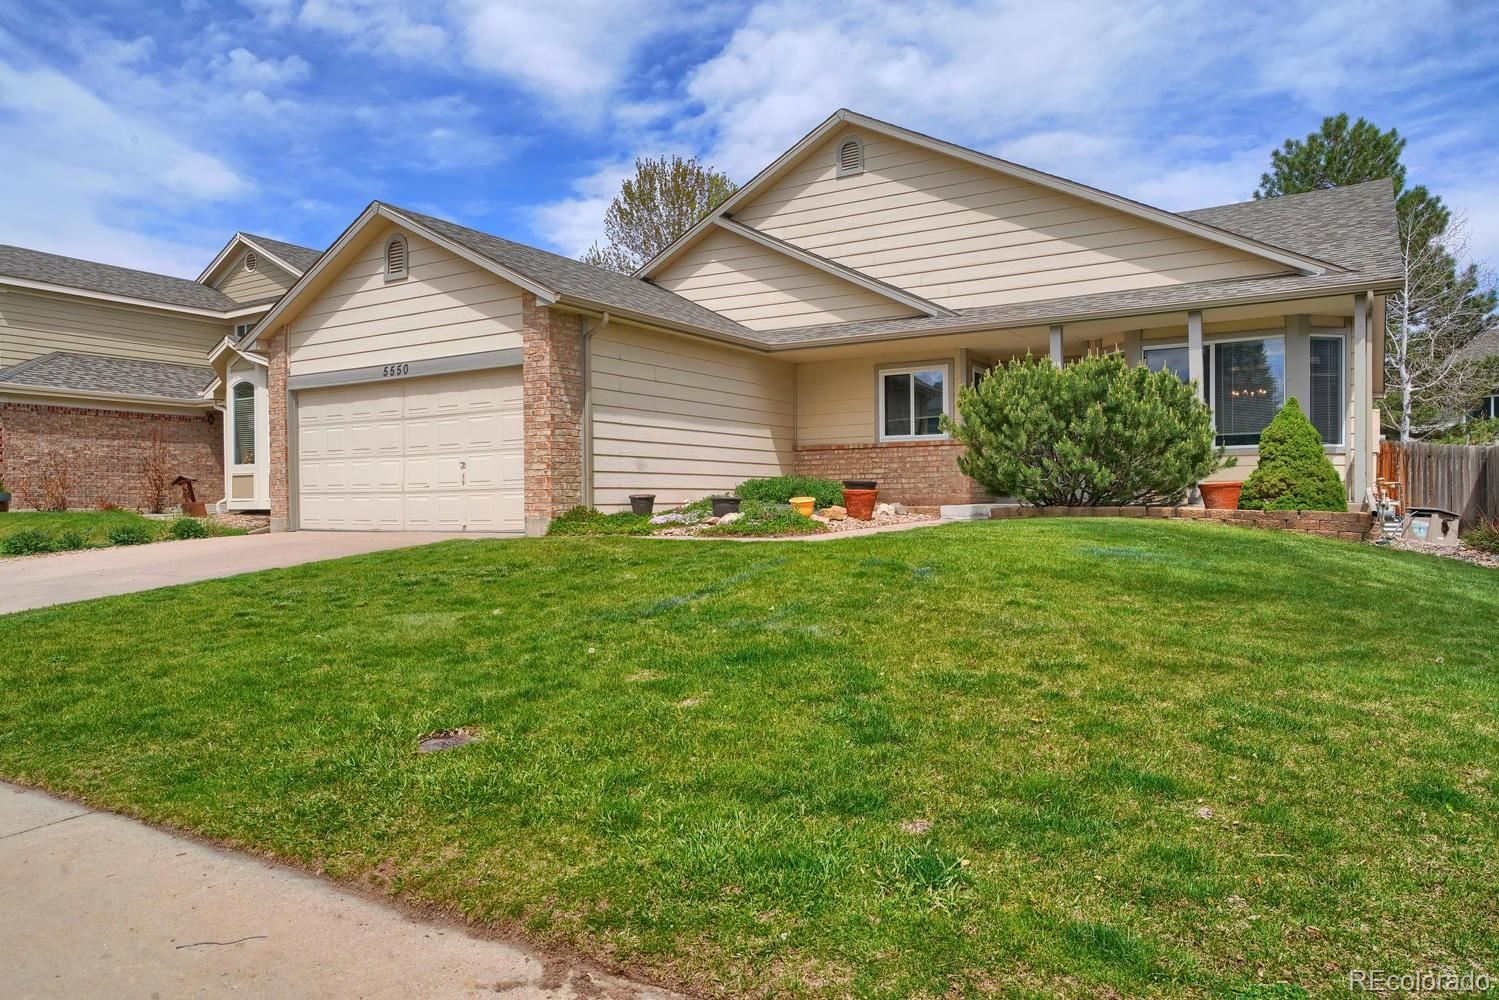 5550 S Van Gordon Way, Littleton, CO 80127 - #: 3241691